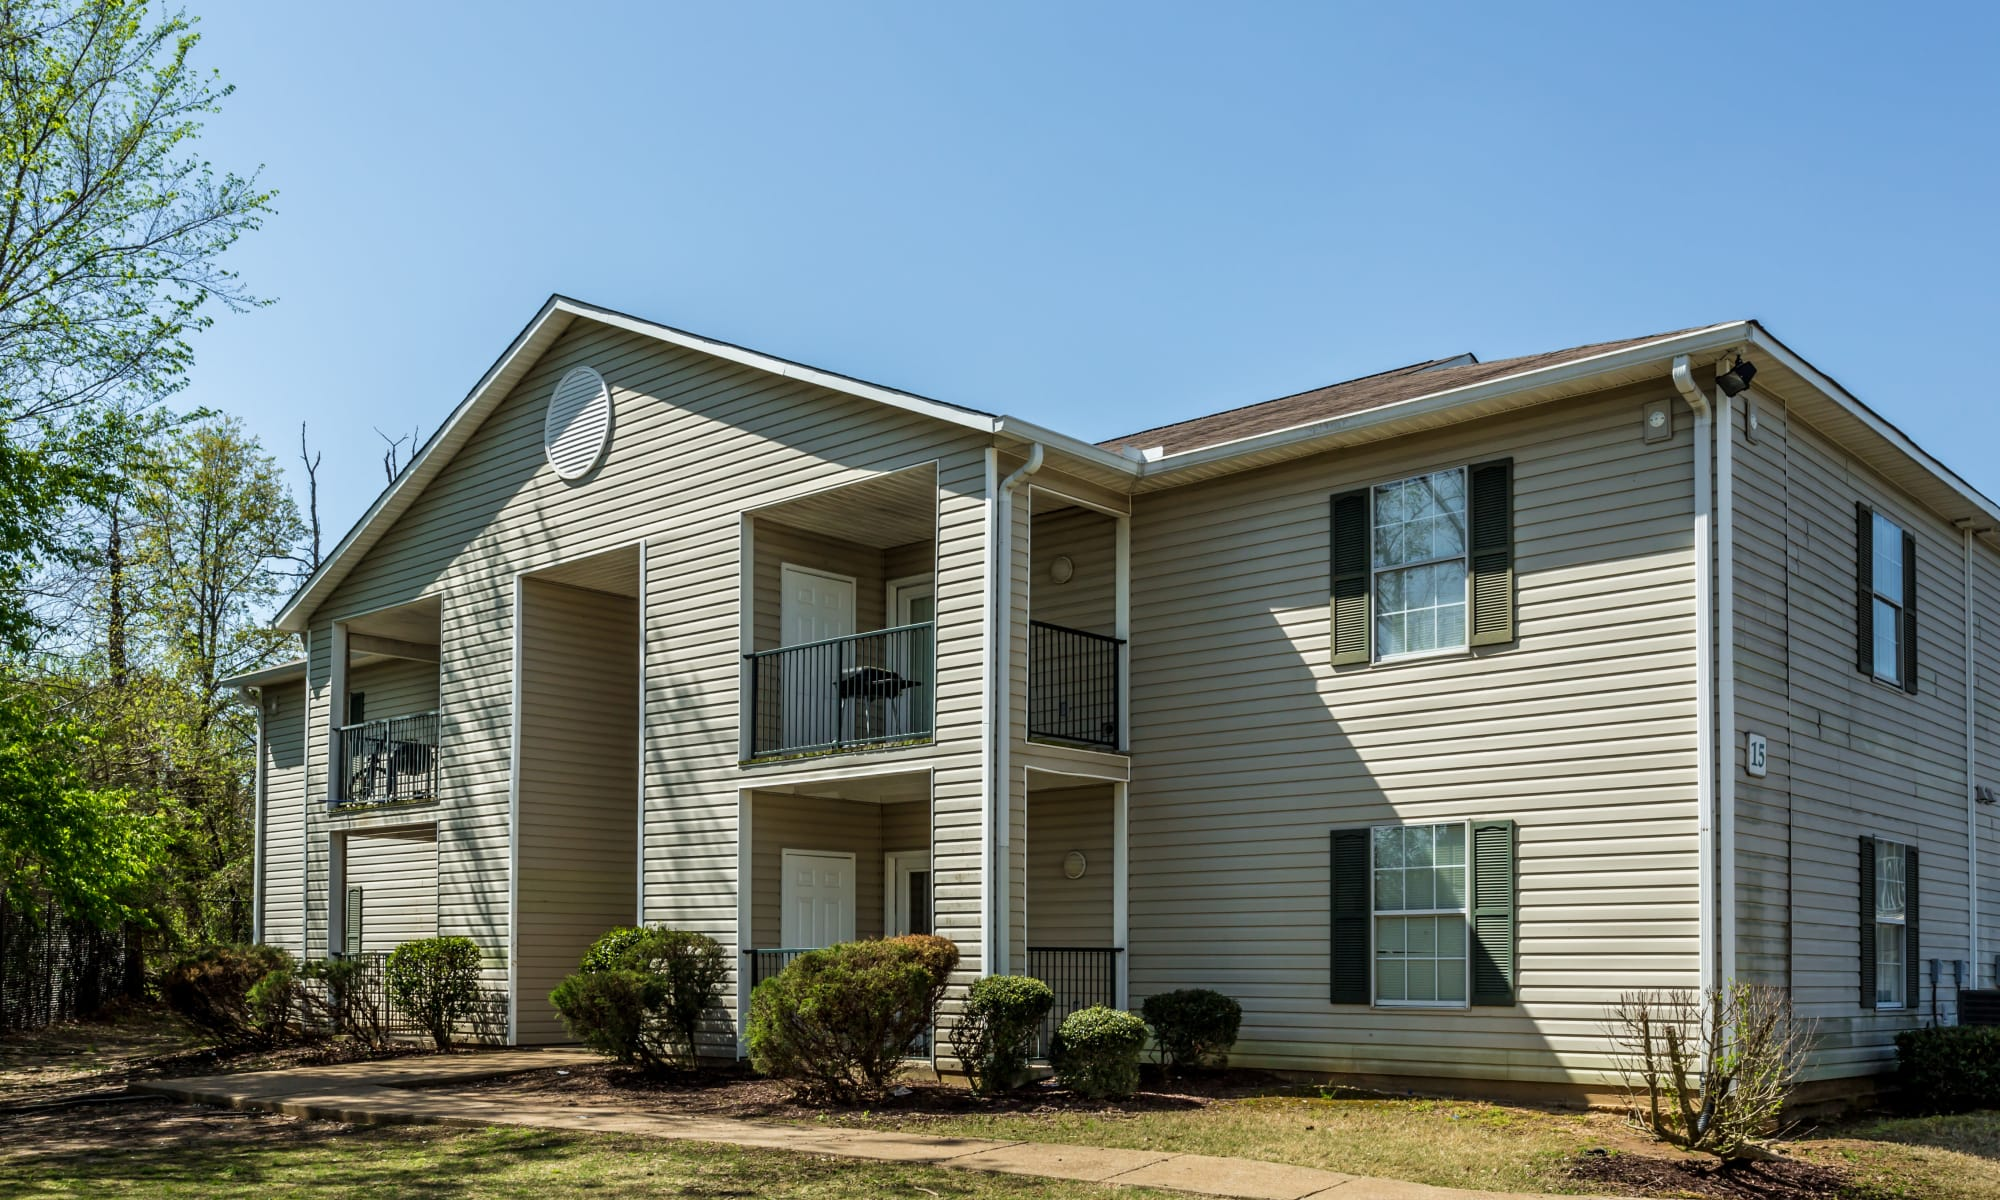 Beautifully landscaped apartments at Park Ridge Apartments in Jackson, Tennessee